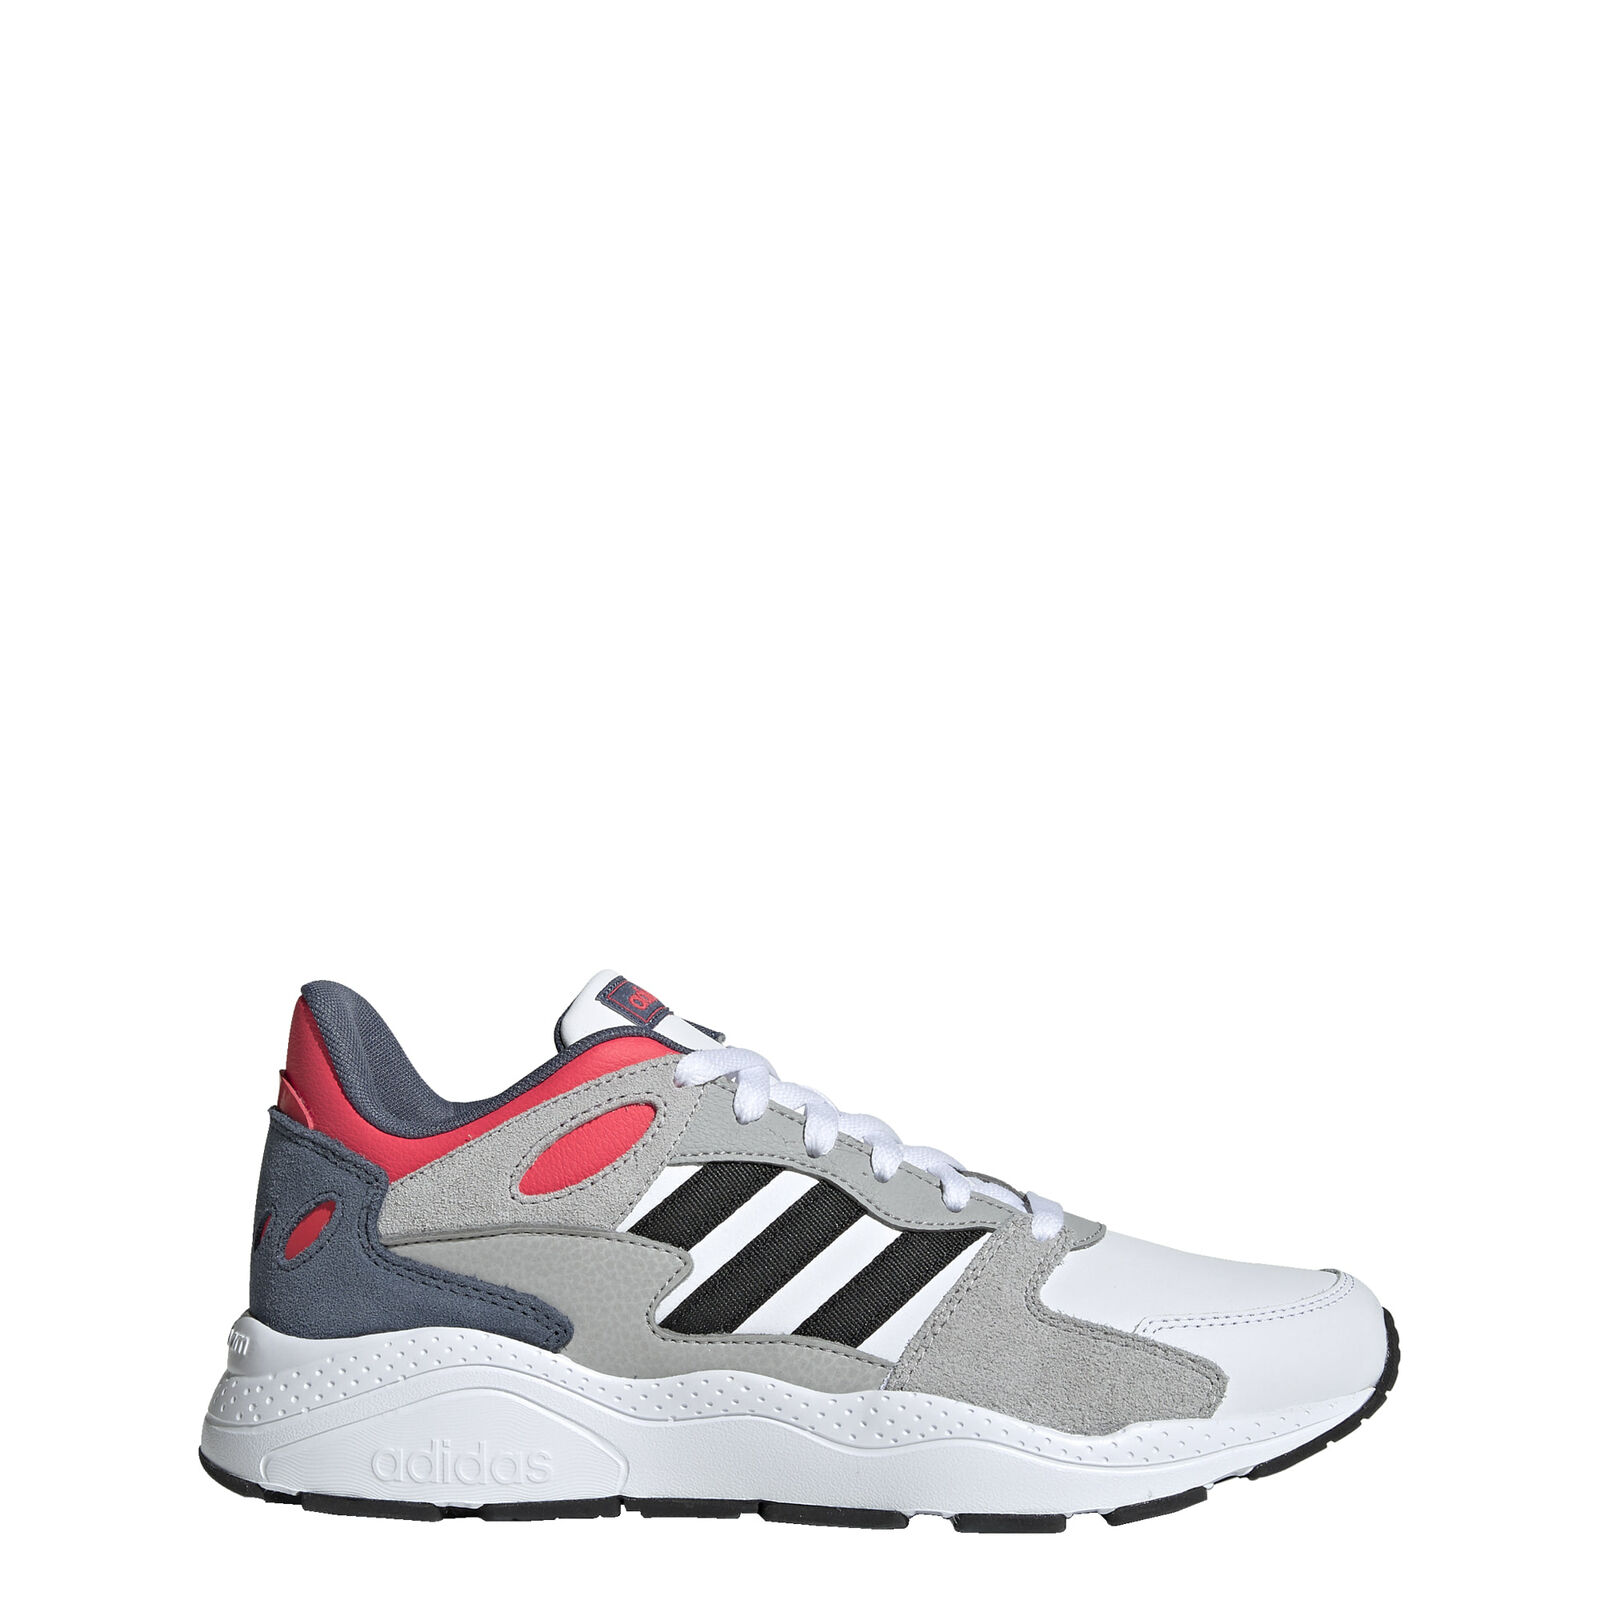 Adidas Performance Crazychaos Schuh Herren Trainers;Lifestyle Trainers Beige